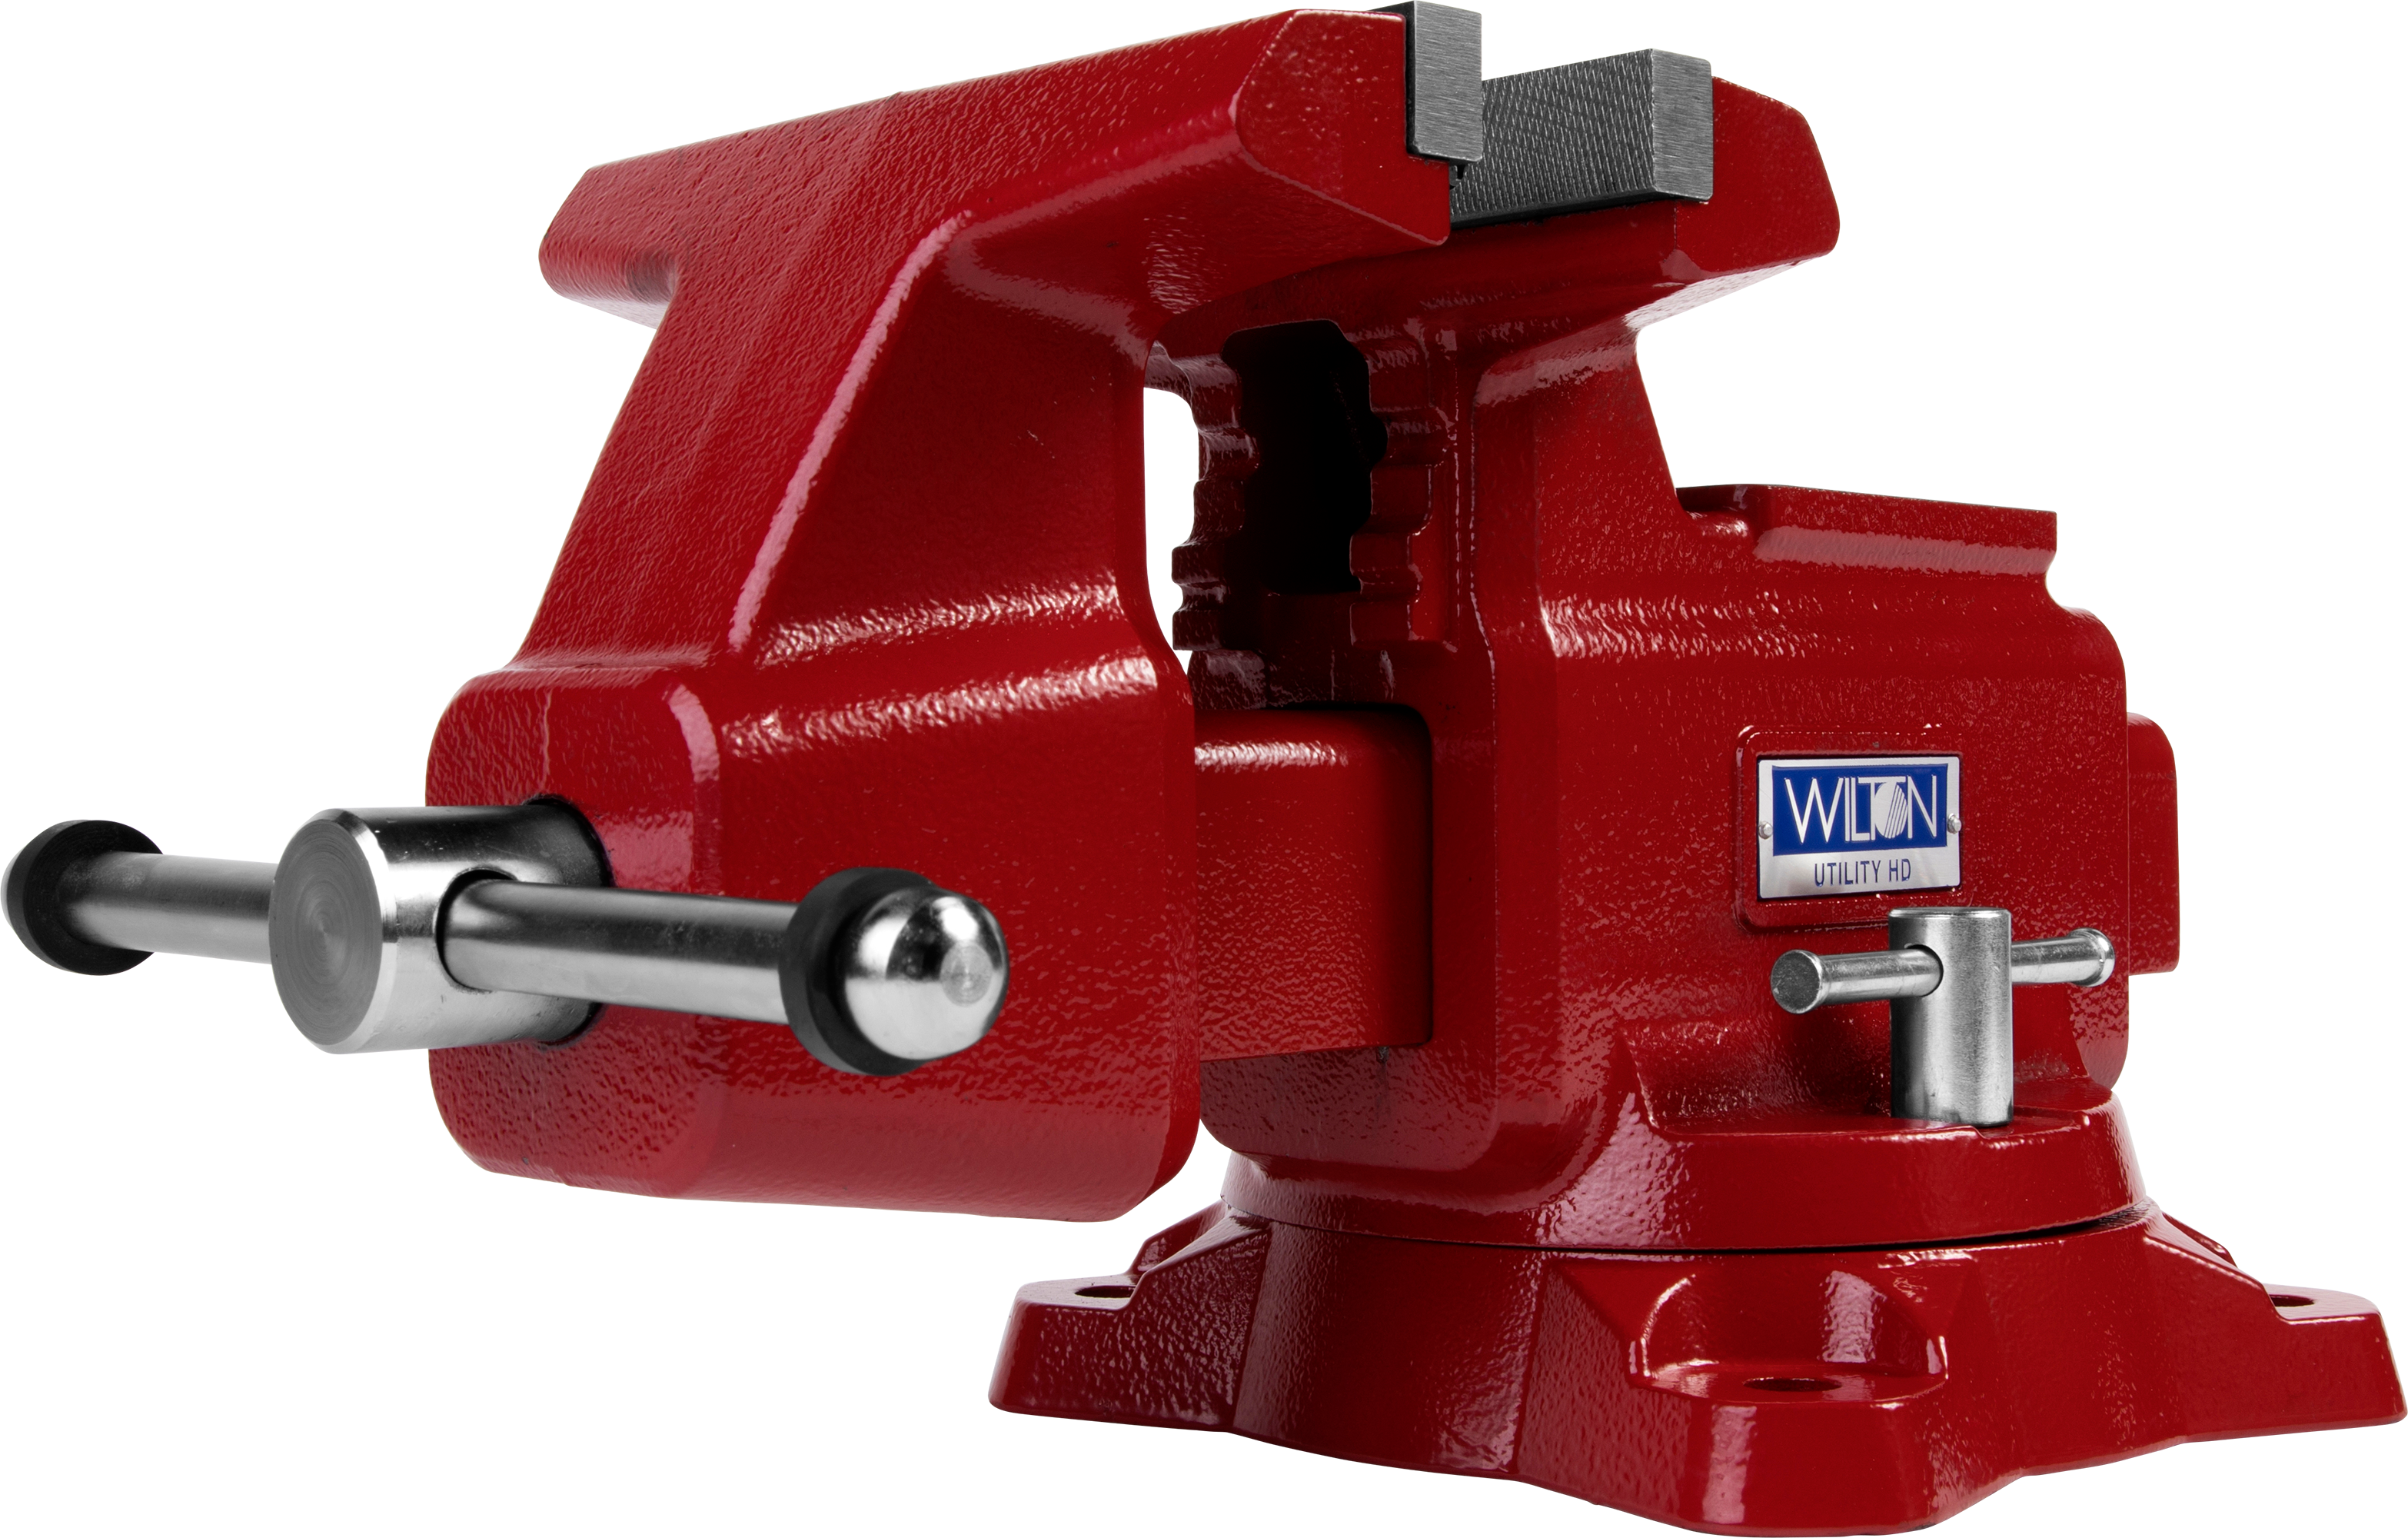 "Manual: Utilty HD Bench Vise 8"" Jaw Width, 8-1/2"" Jaw Opening, 360° Swivel Base"